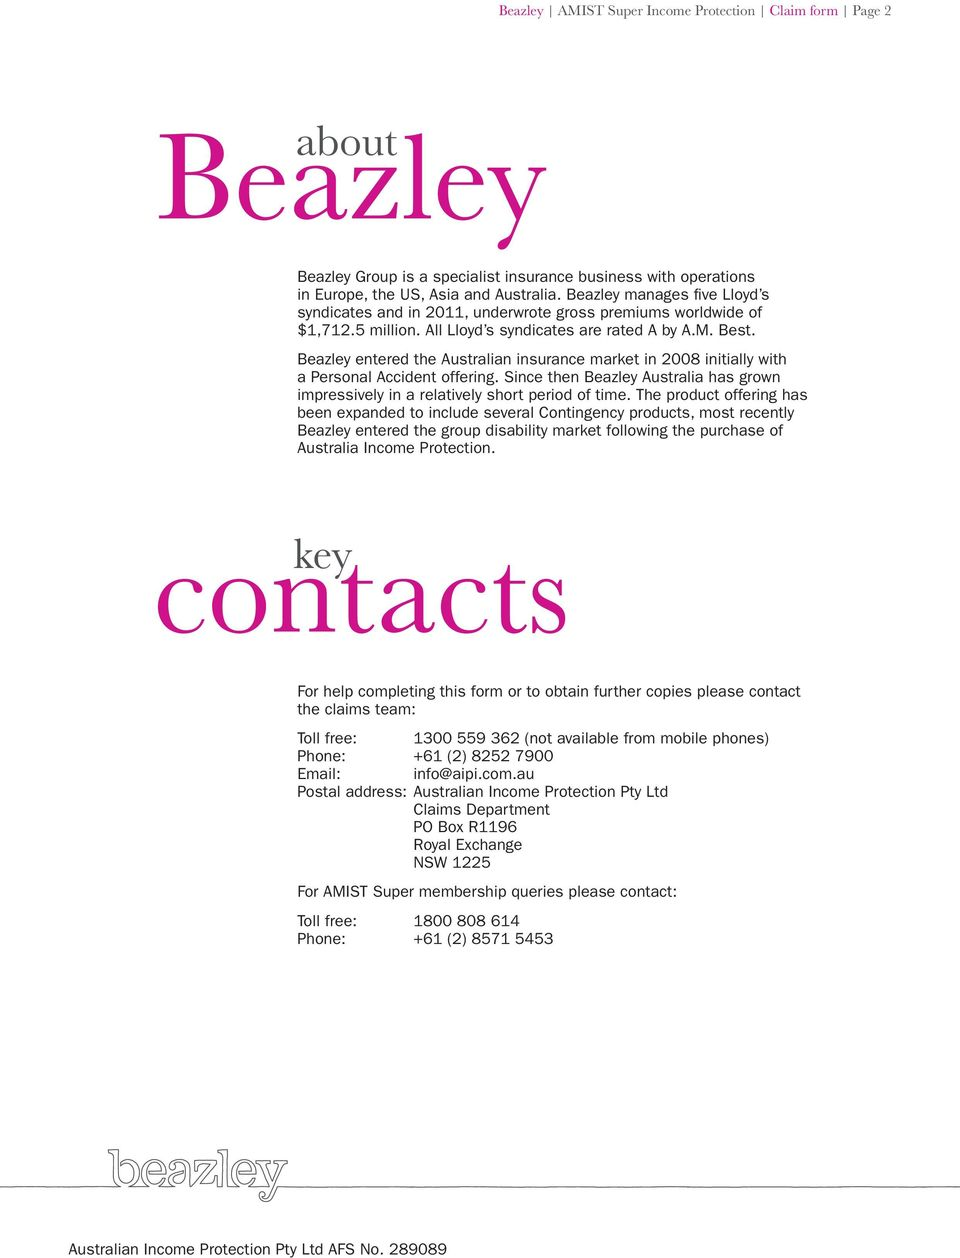 Beazley entered the Australian insurance market in 2008 initially with a Personal Accident offering. Since then Beazley Australia has grown impressively in a relatively short period of time.